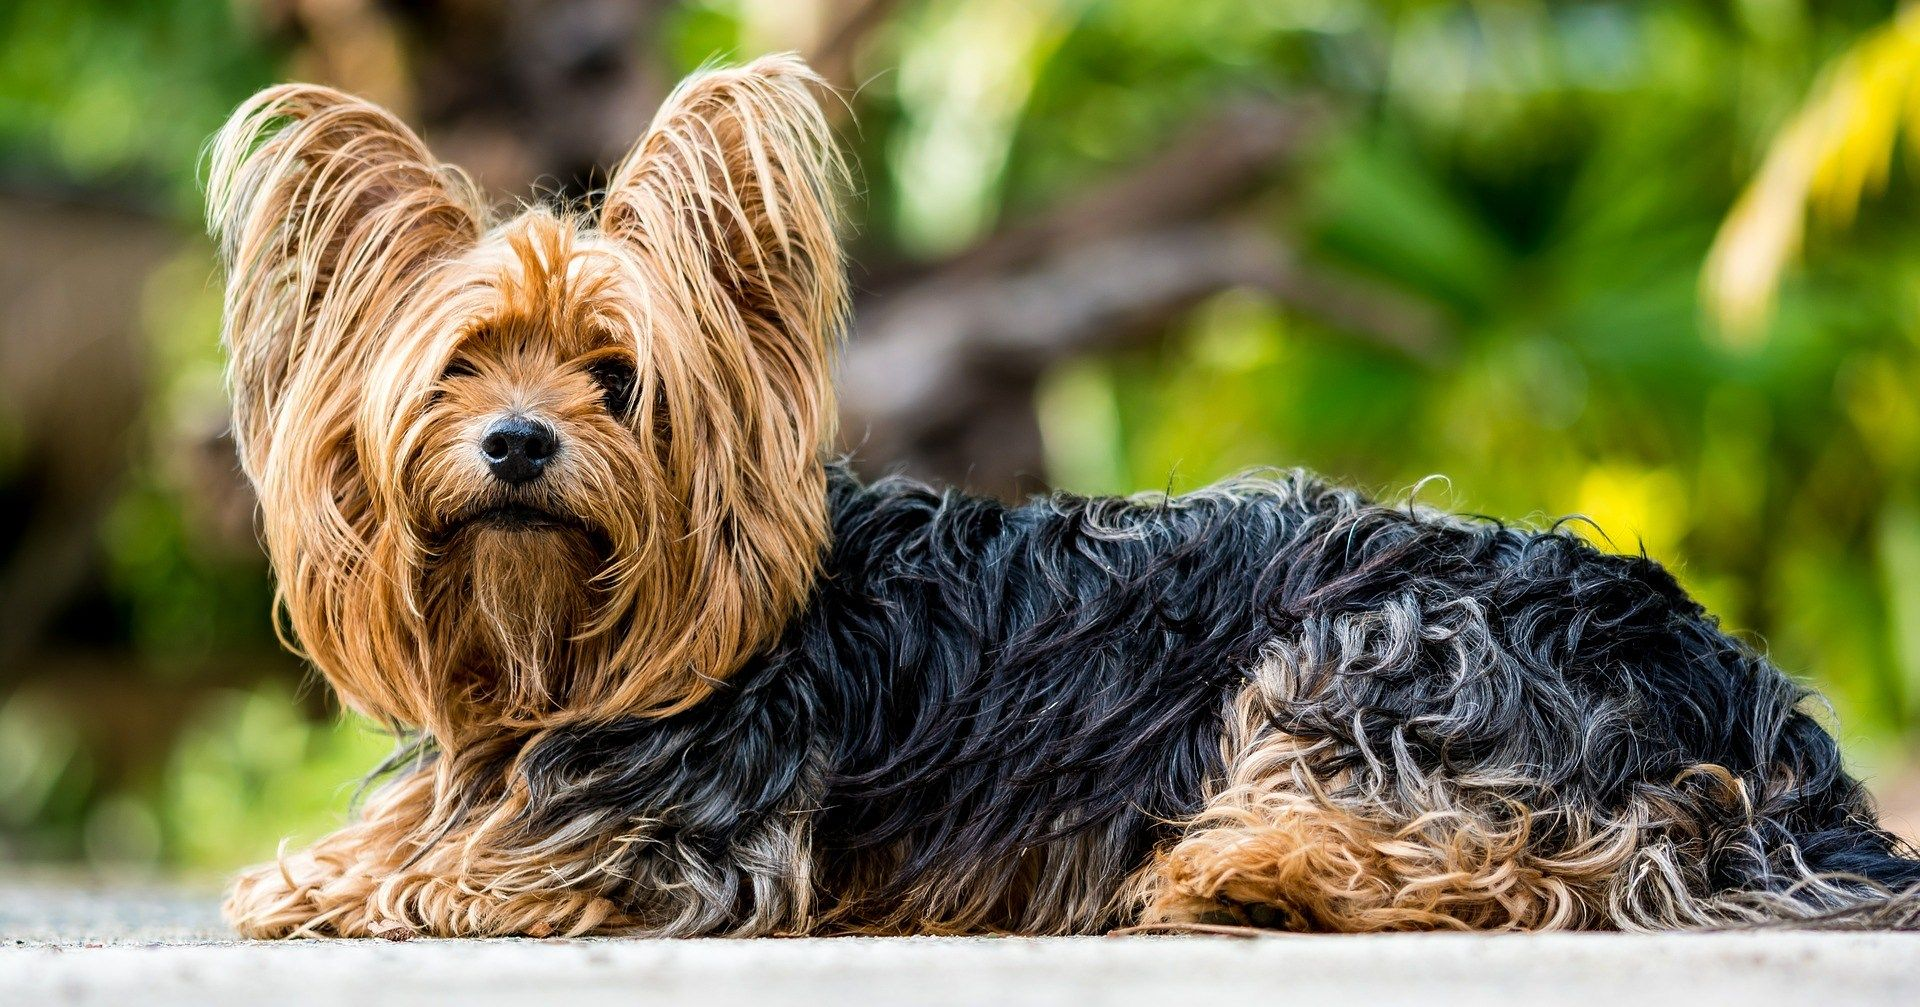 Best Dog Food For Yorkies Make Them Healthy And Shiny Yorkshire Terrier Dog Yorkshire Terrier Terrier Dogs